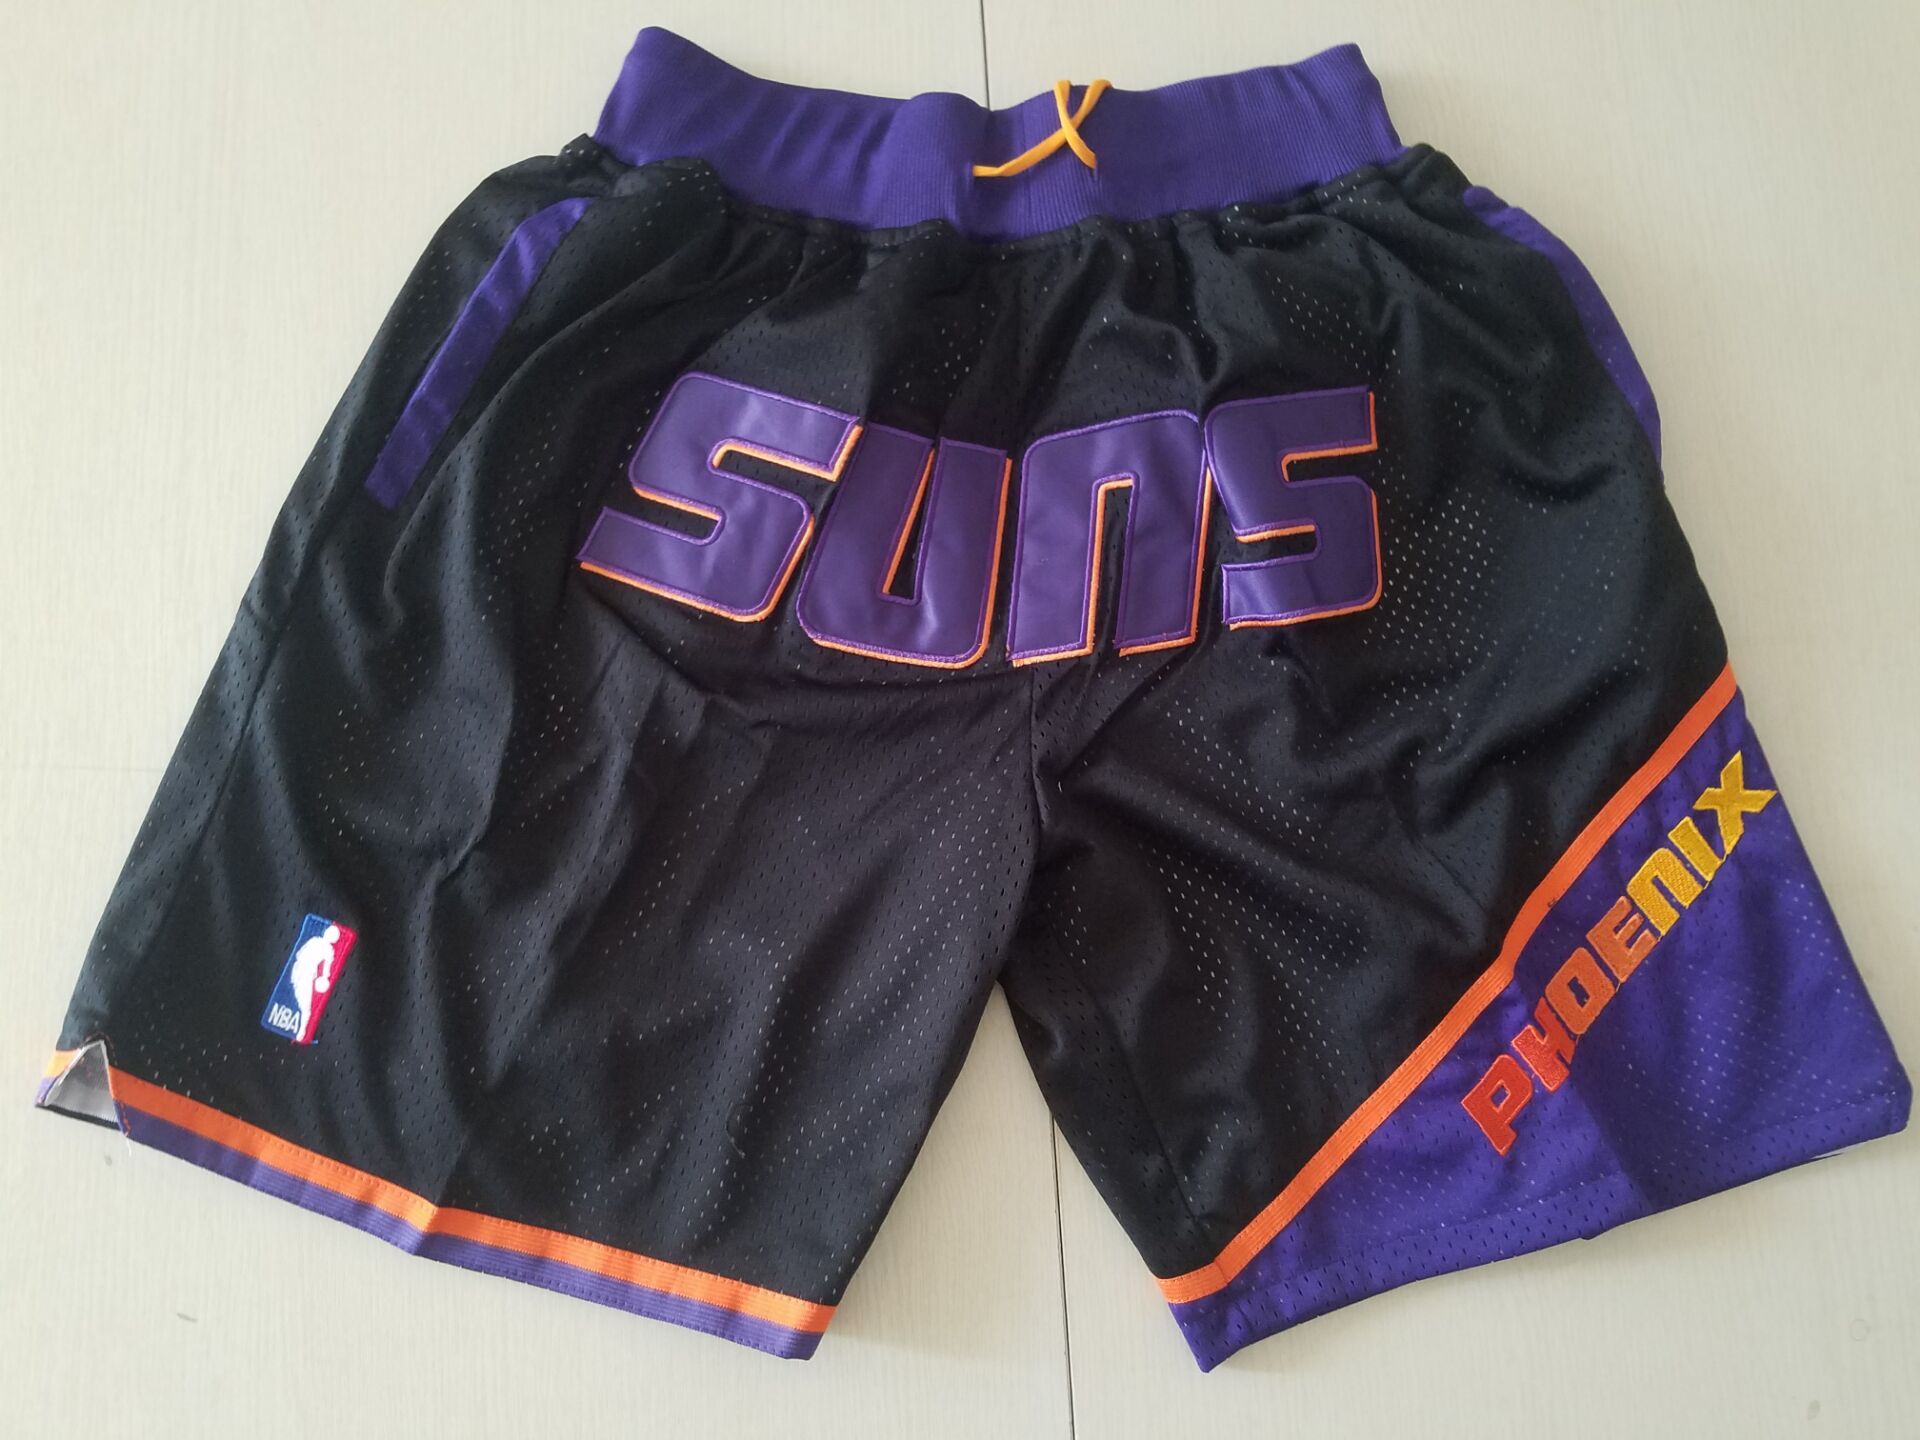 2020 Men NBA Phoenix Suns shorts